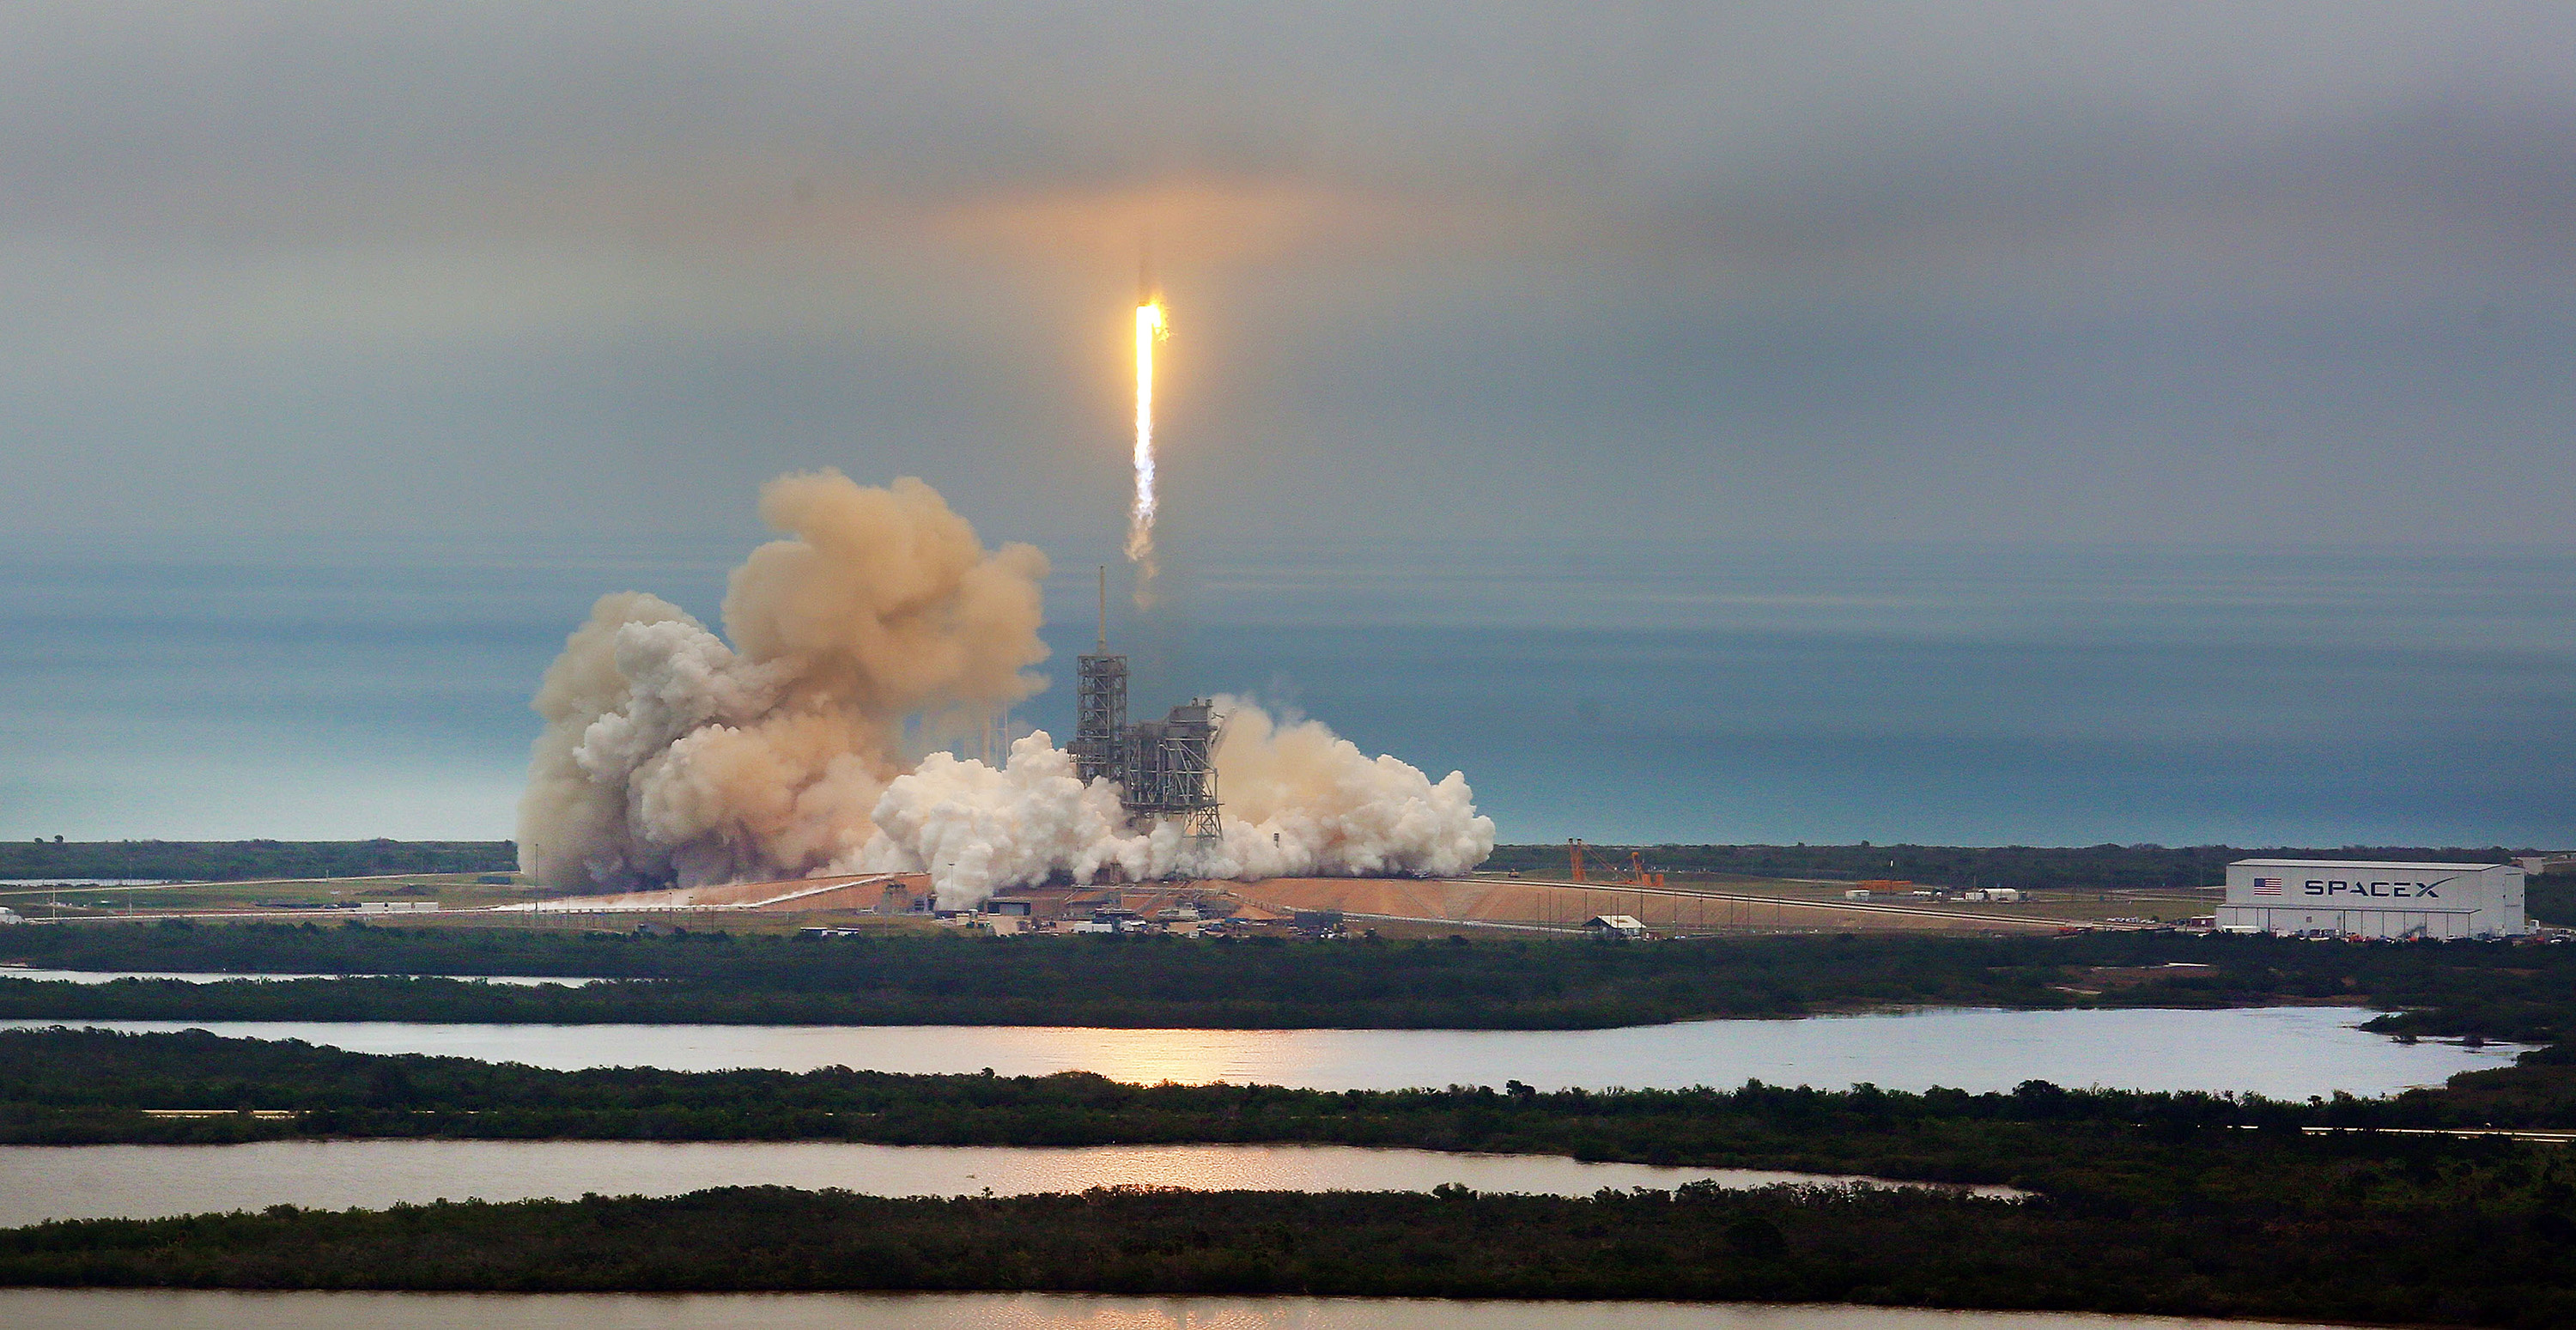 A SpaceX Falcon9 rocket blasts off Sunday, Feb. 19, 2017 from the Kennedy Space Center.